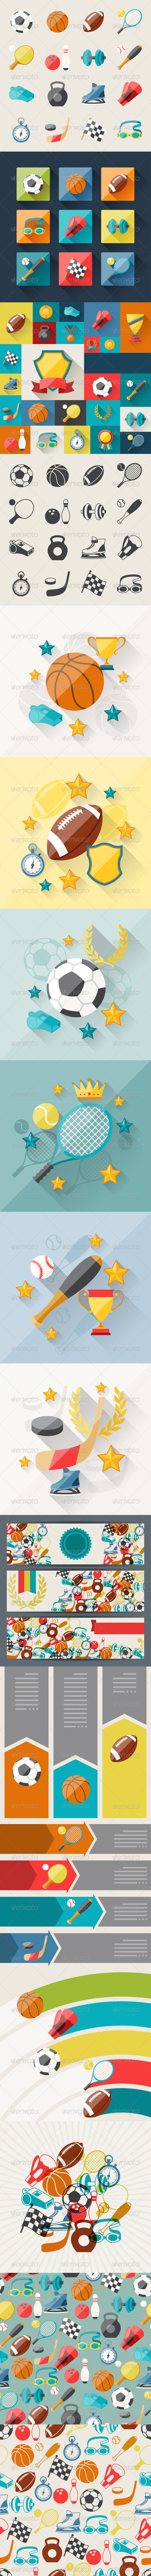 Sport Icons and Backgrounds in Flat Design Style. - Sports/Activity Conceptual